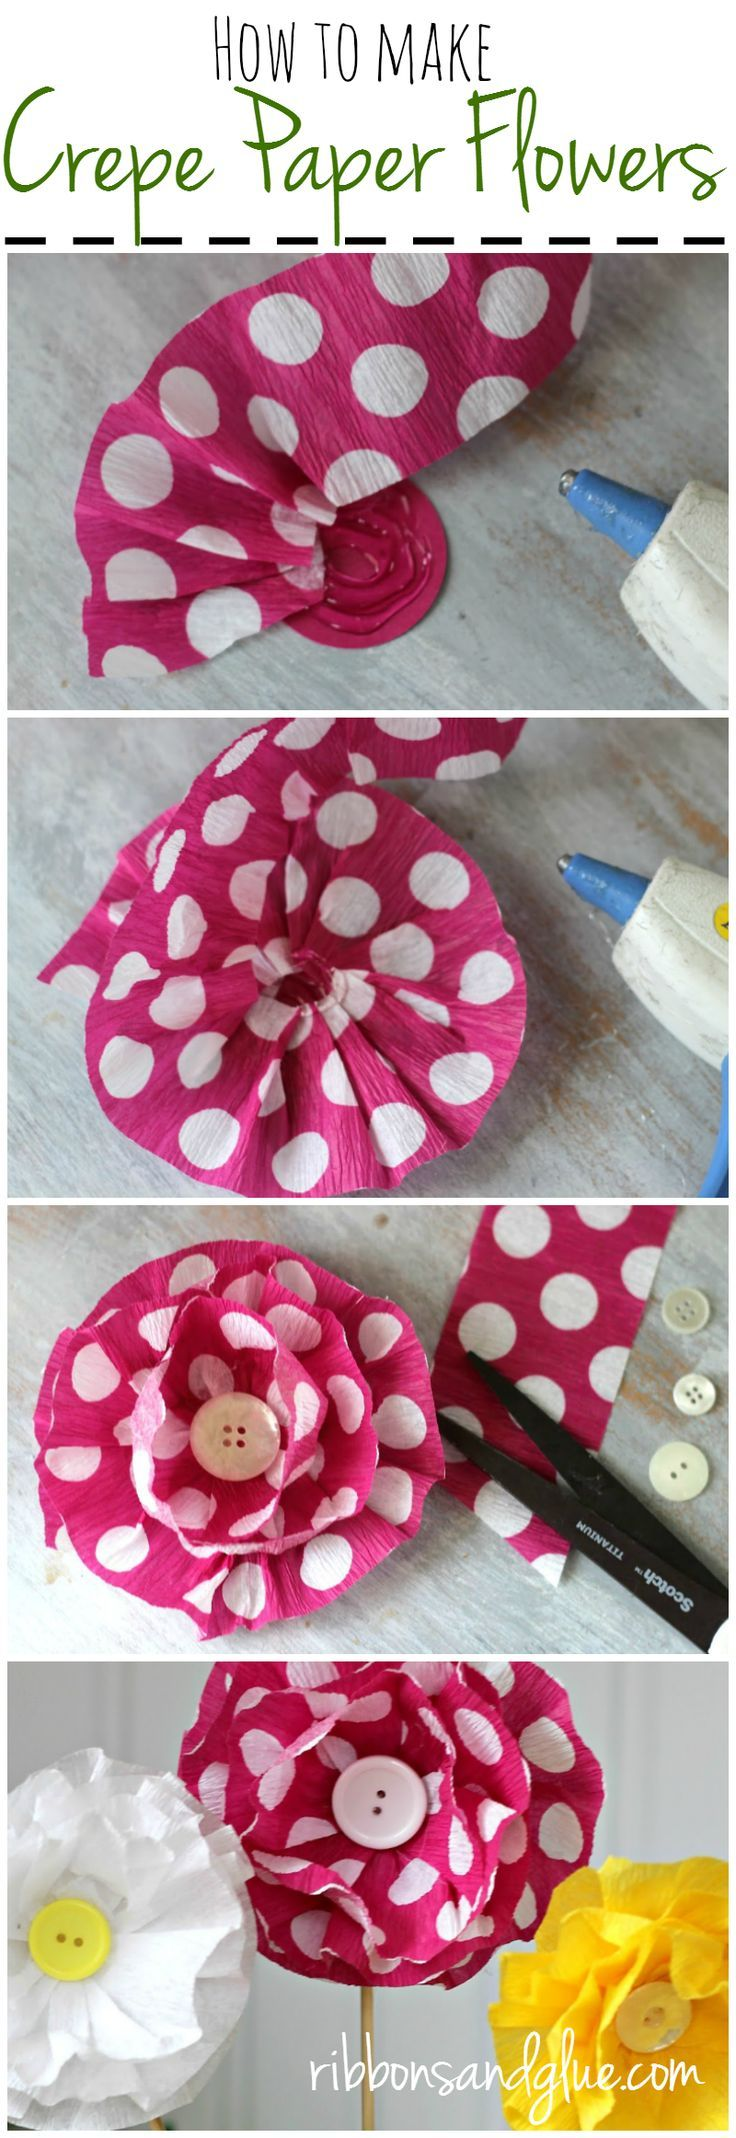 How to make crepe paper flowers crepe paper flowers crepe paper how to make crepe paper flowers crepe paper flowers crepe paper and crepes mightylinksfo